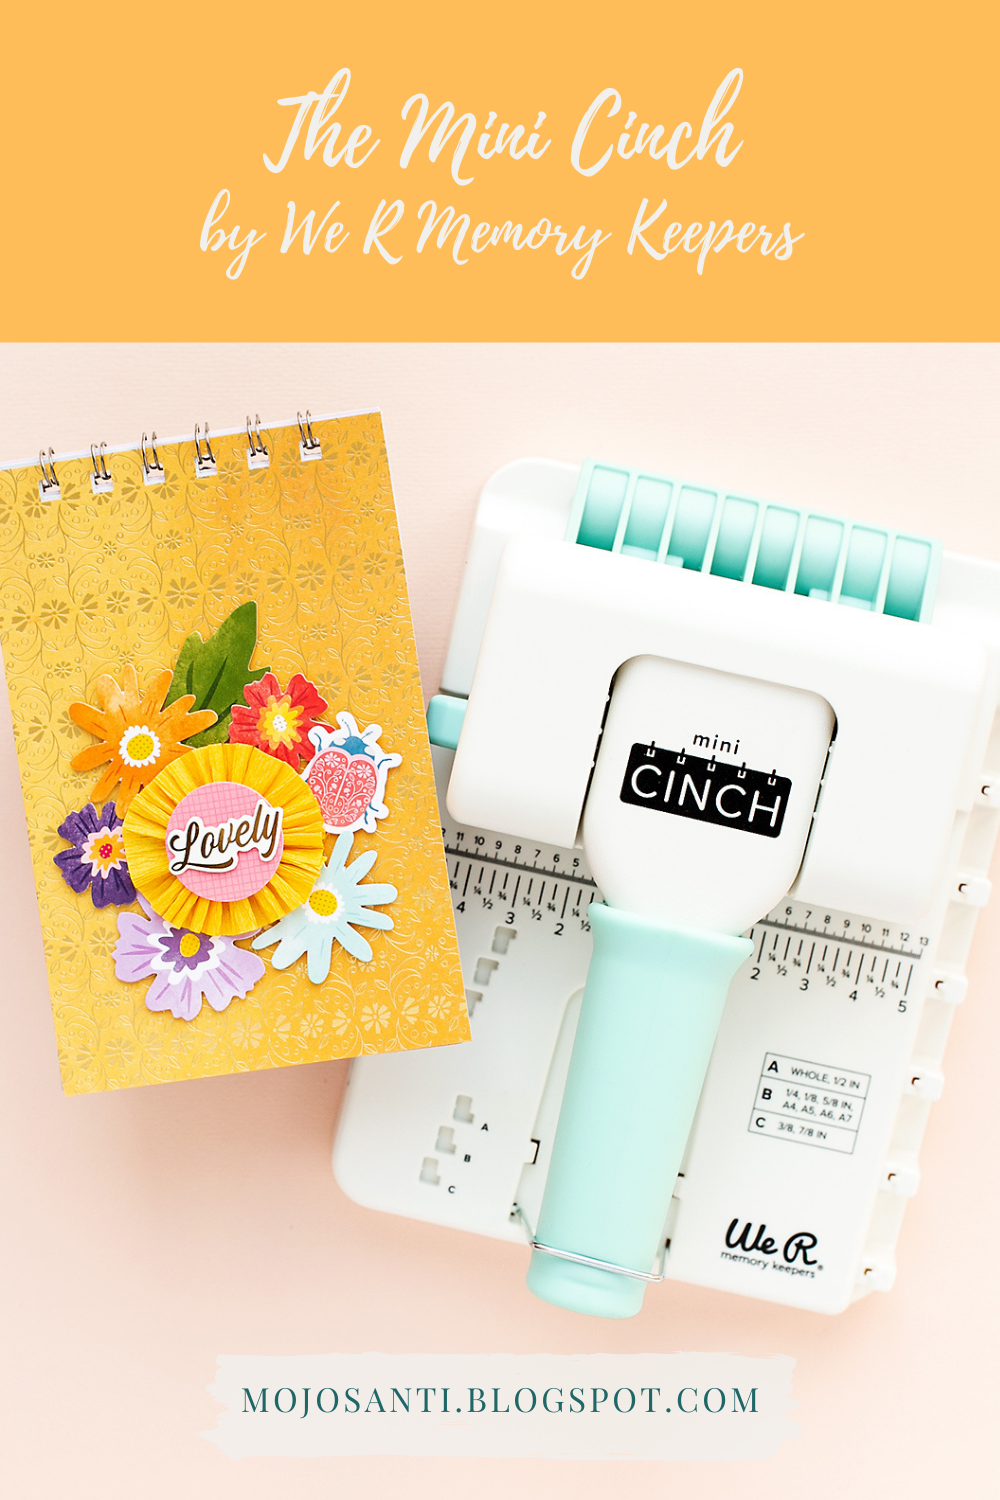 Create easy mini albums with the Mini Cinch by We R Memory Keepers